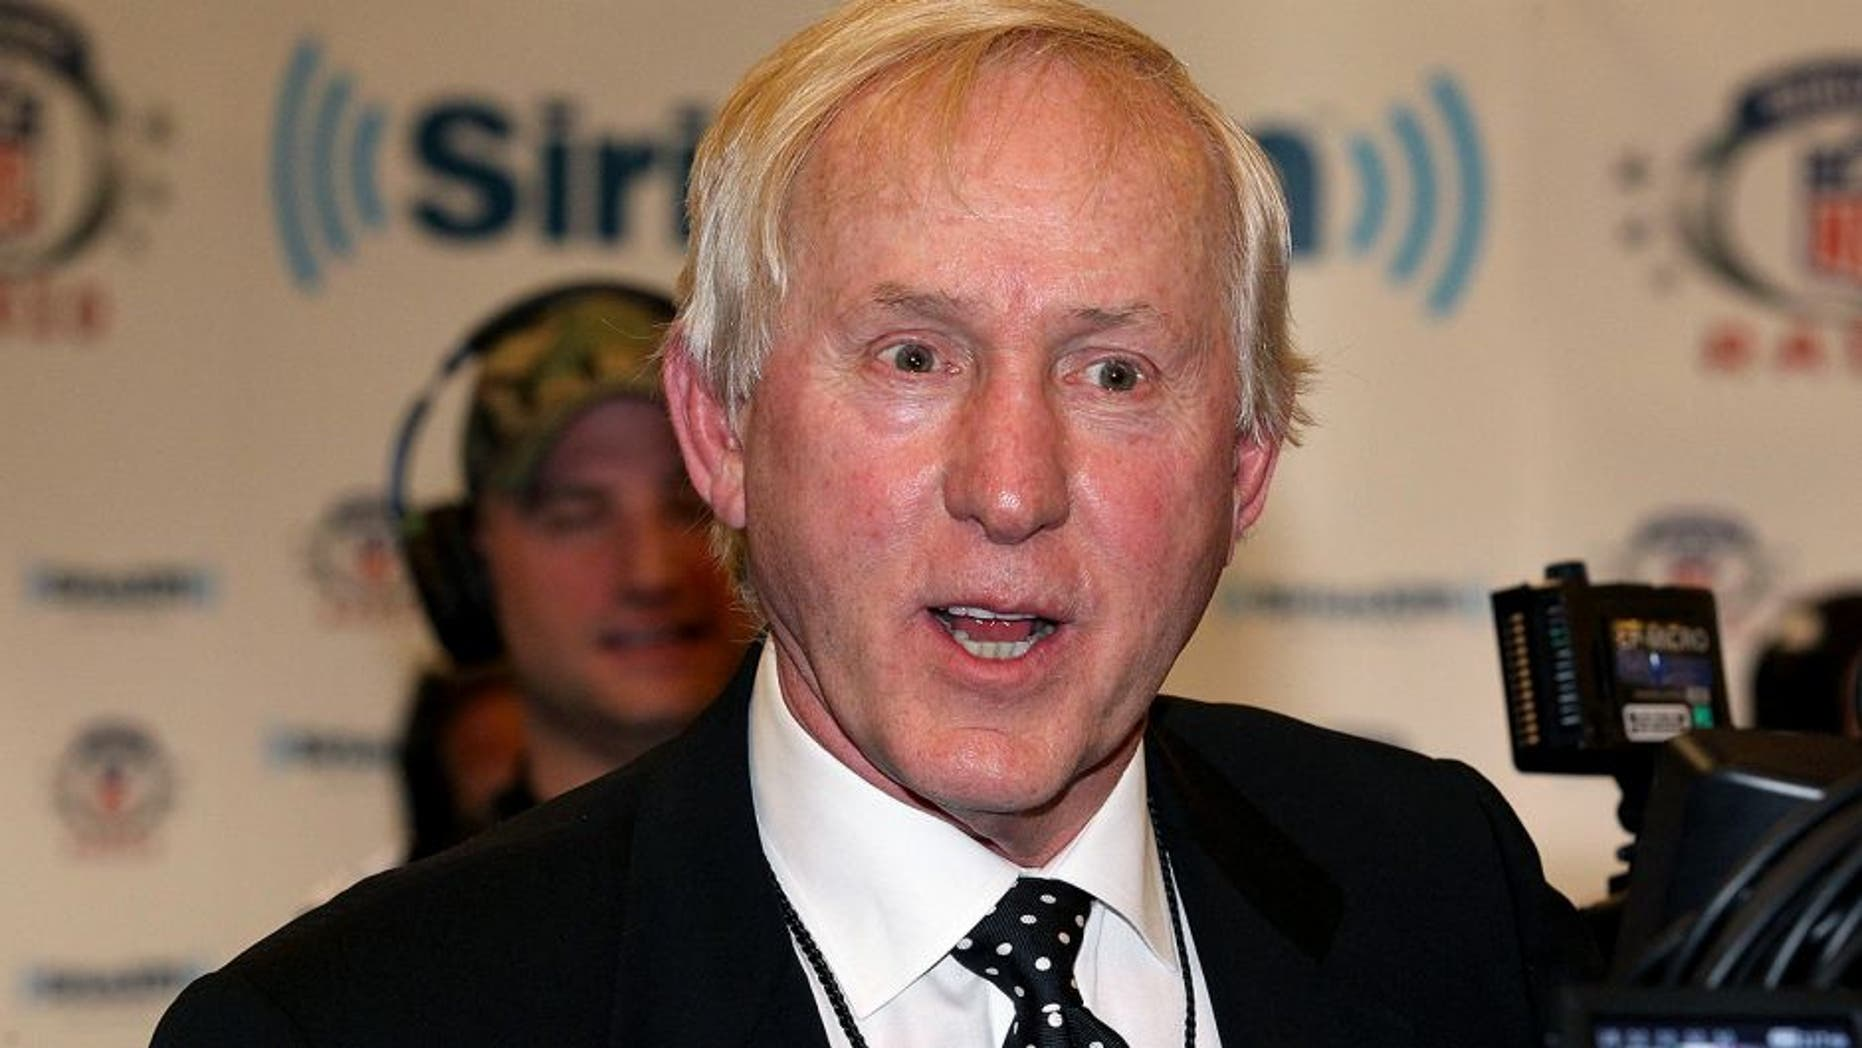 Feb 3, 2012; Indianapolis, IN, USA; NFL former quarterback Fran Tarkenton gives an interview on radio row for Super Bowl week. The New York Giants will play the New England Patriots in Super Bowl XLVI . Mandatory Credit: Matthew Emmons-USA TODAY Sports